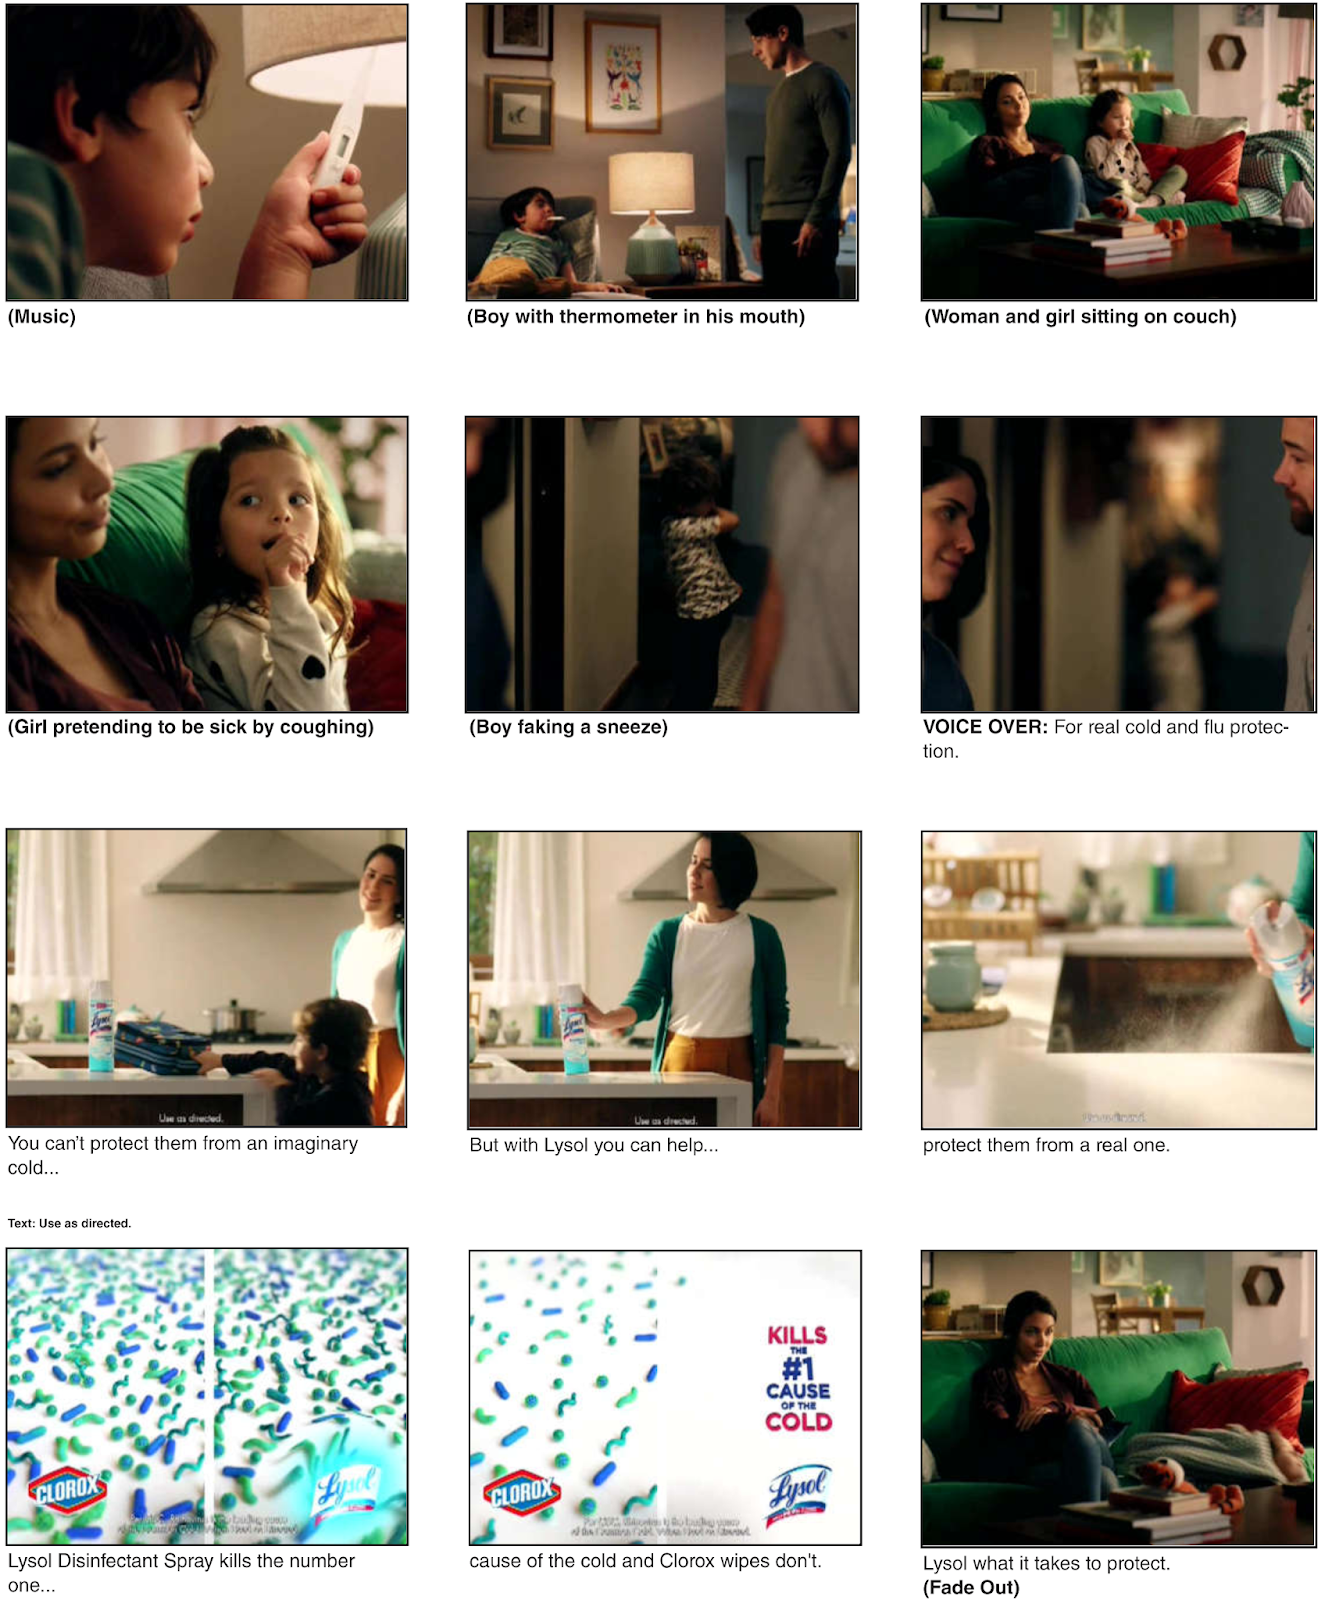 Lysol can't quickly clean up this mess of anti-Clorox ads